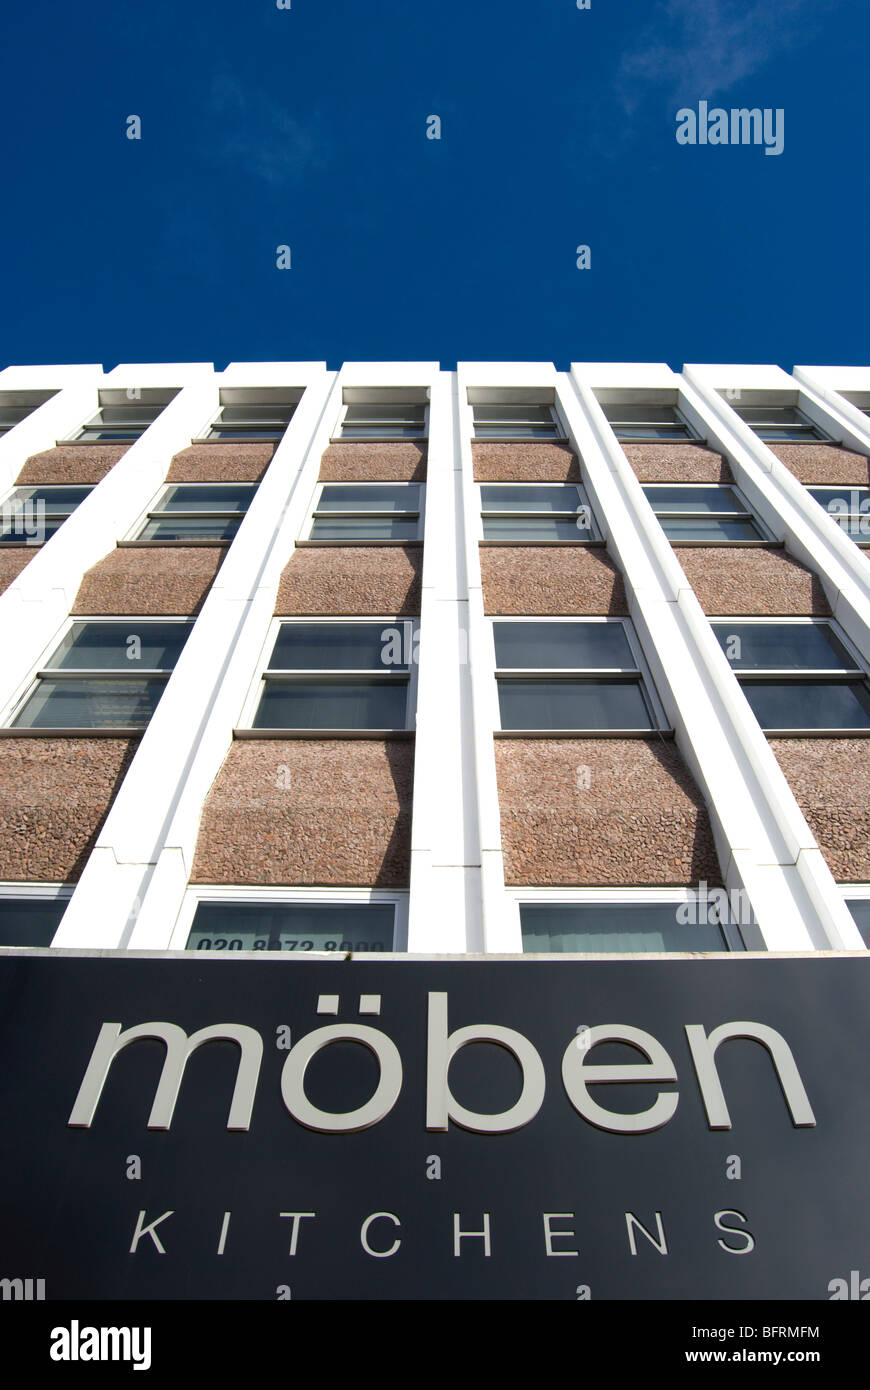 moben kitchens sign below an office block in kingston upon thames, surrey, england - Stock Image